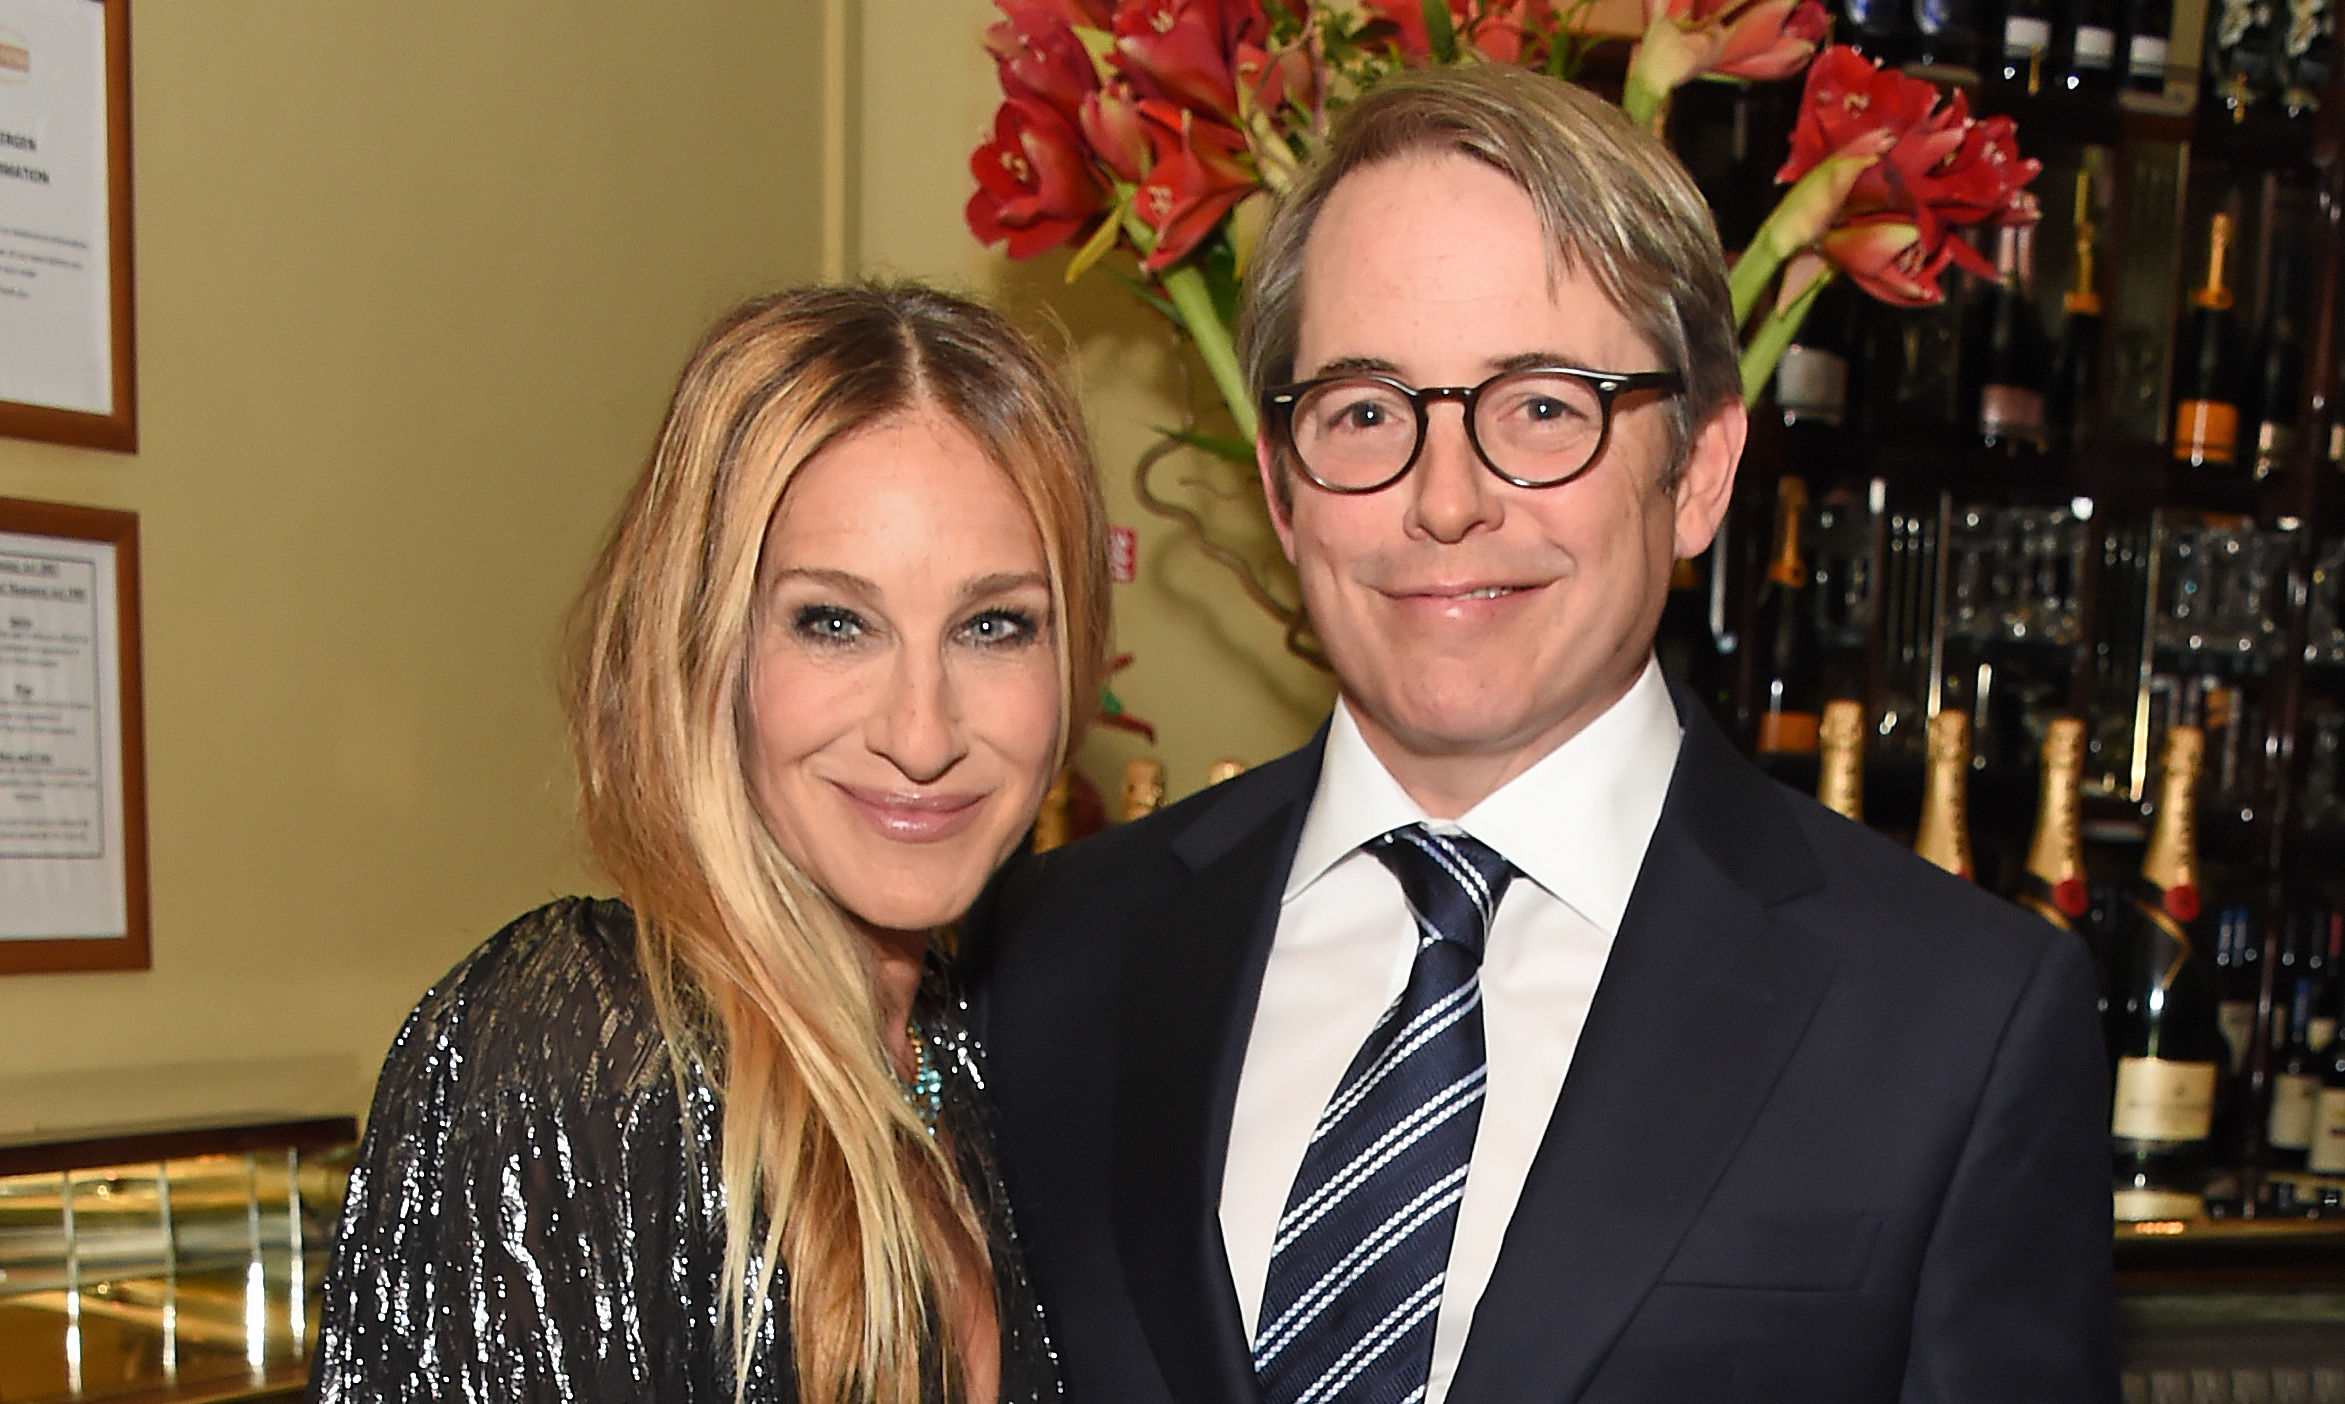 Are Sarah Jessica Parker and Matthew Broderick Still Together?